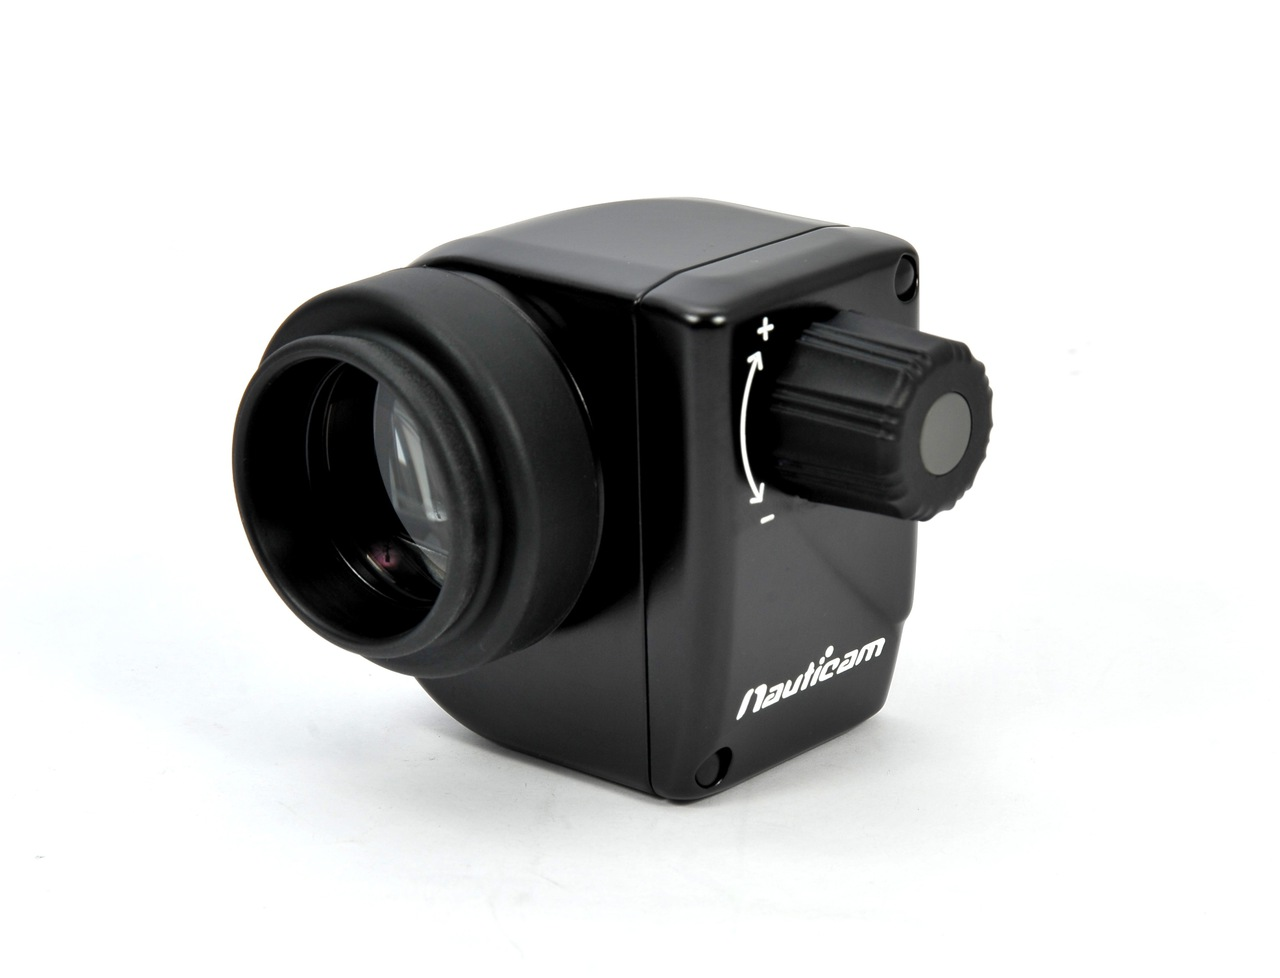 32204 Nauticam 180 Viewfinder for Mirrorless Systems